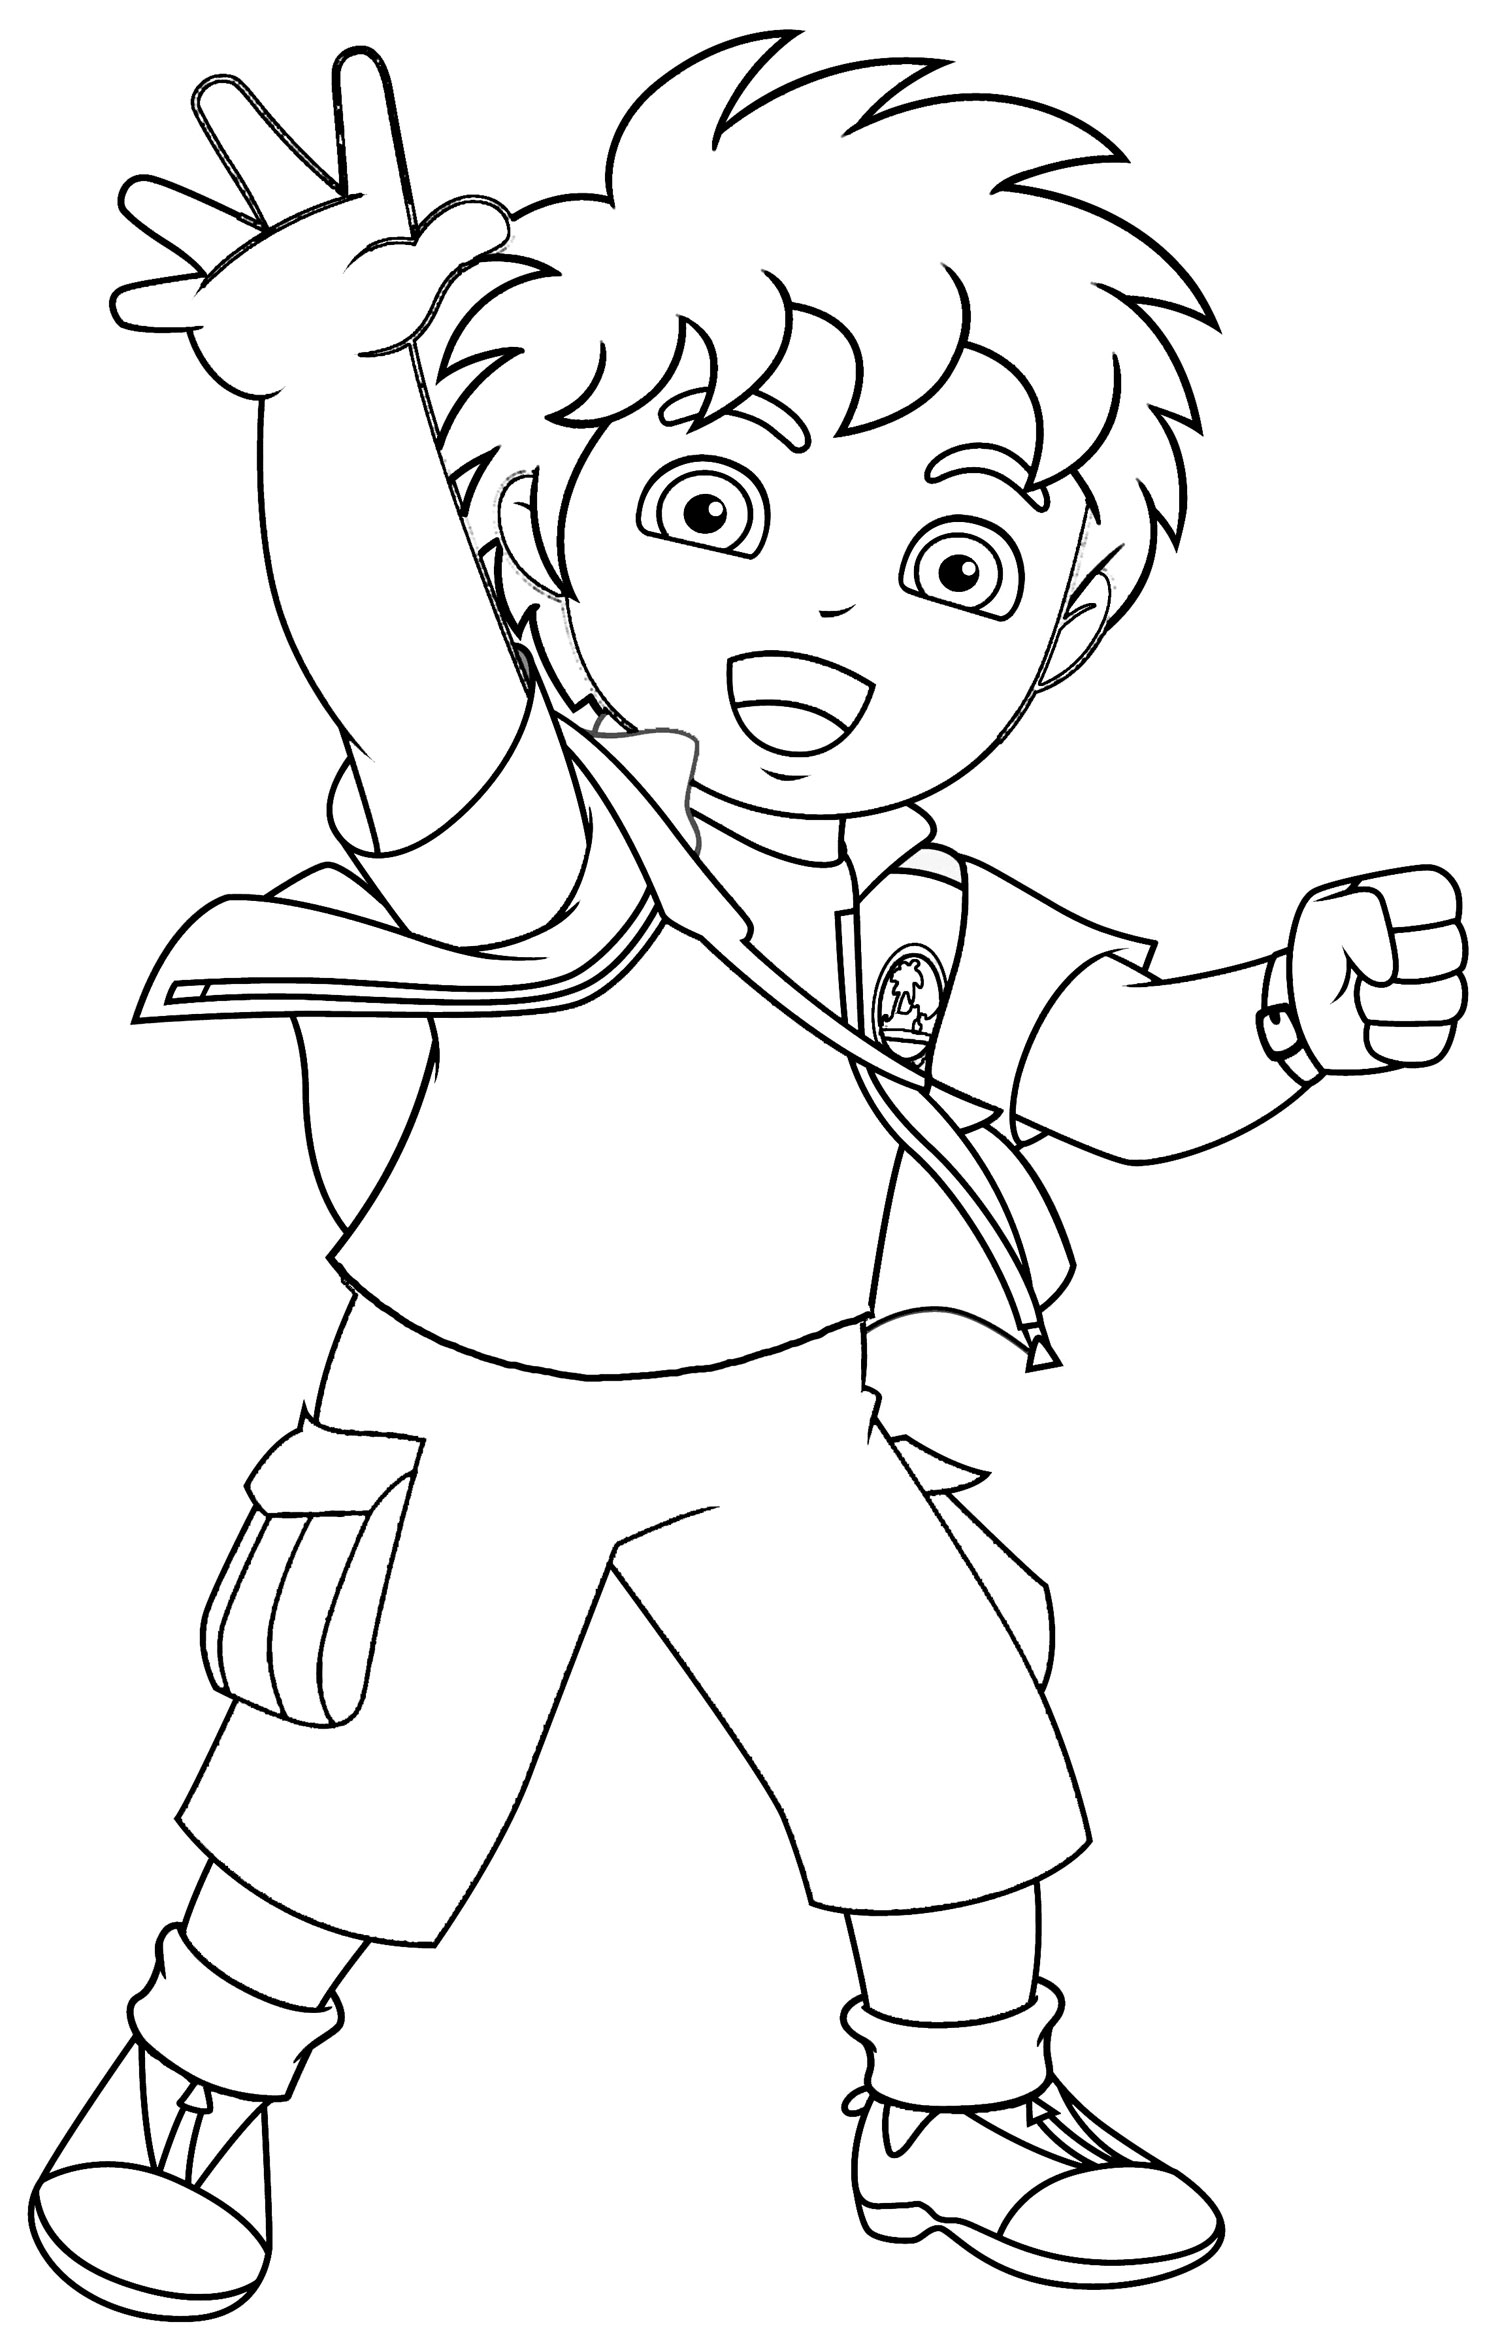 diego coloring pages printable - Free Color Pages